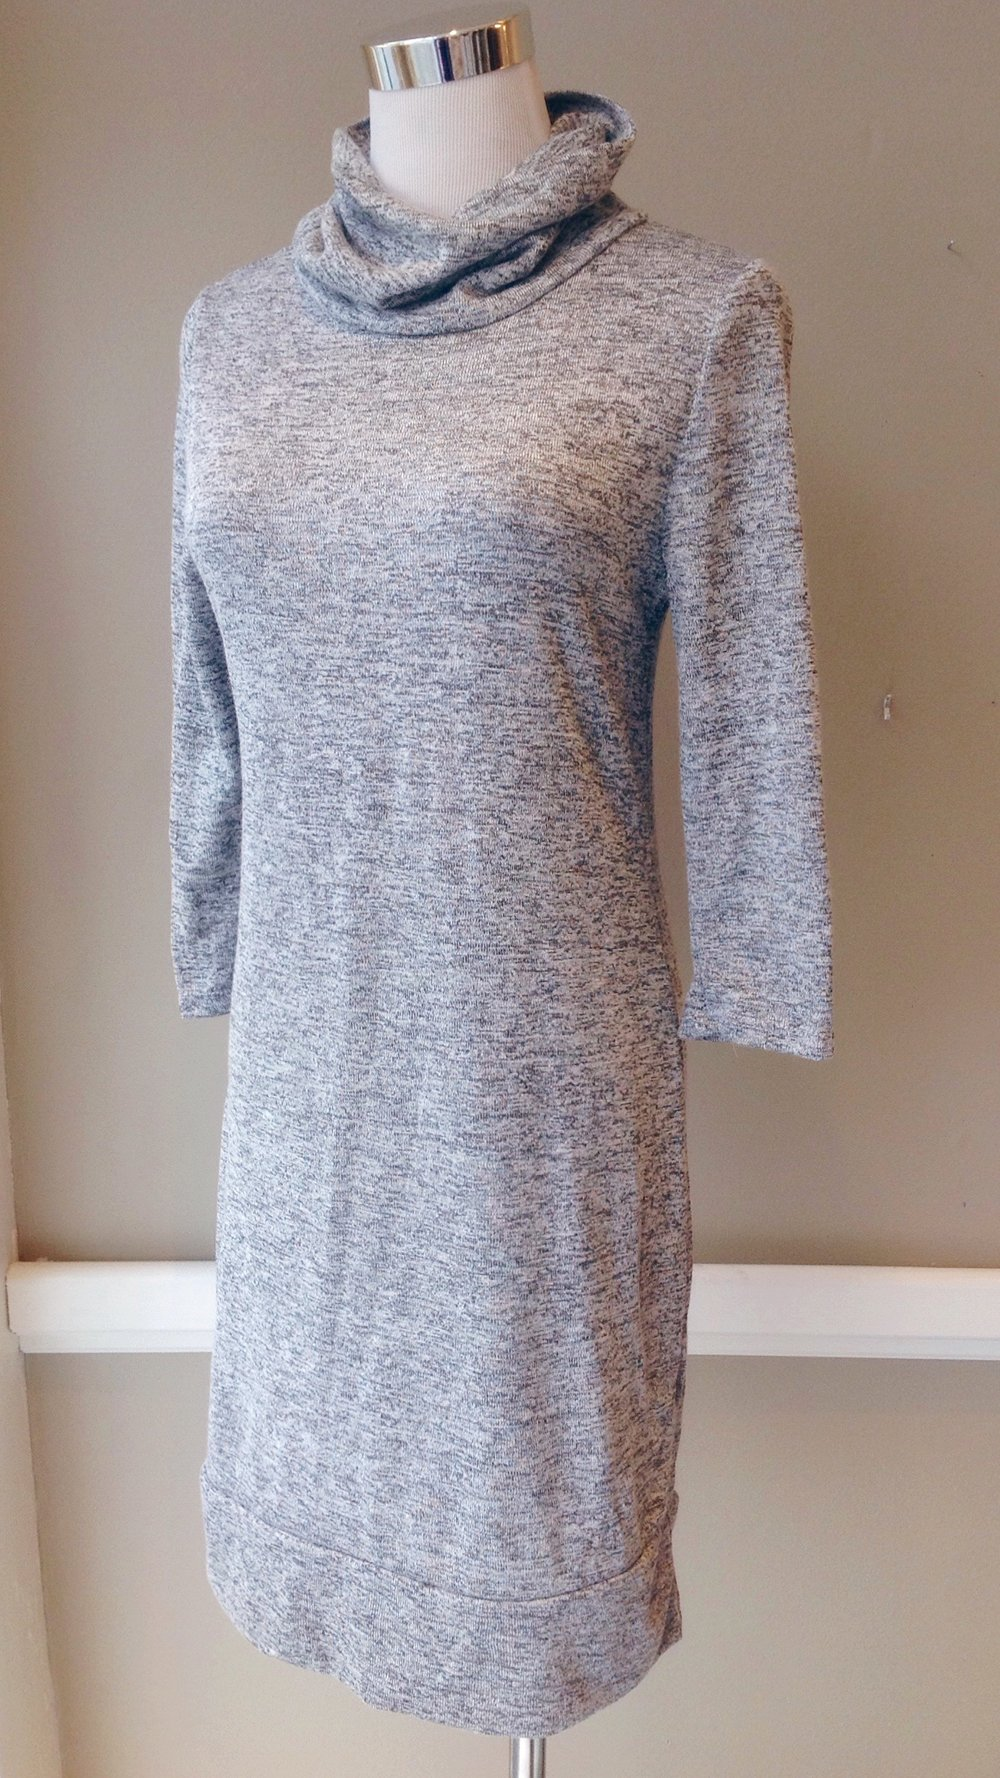 Lightweight knit dress with turtleneck and 3/4 sleeves in heather grey, $35